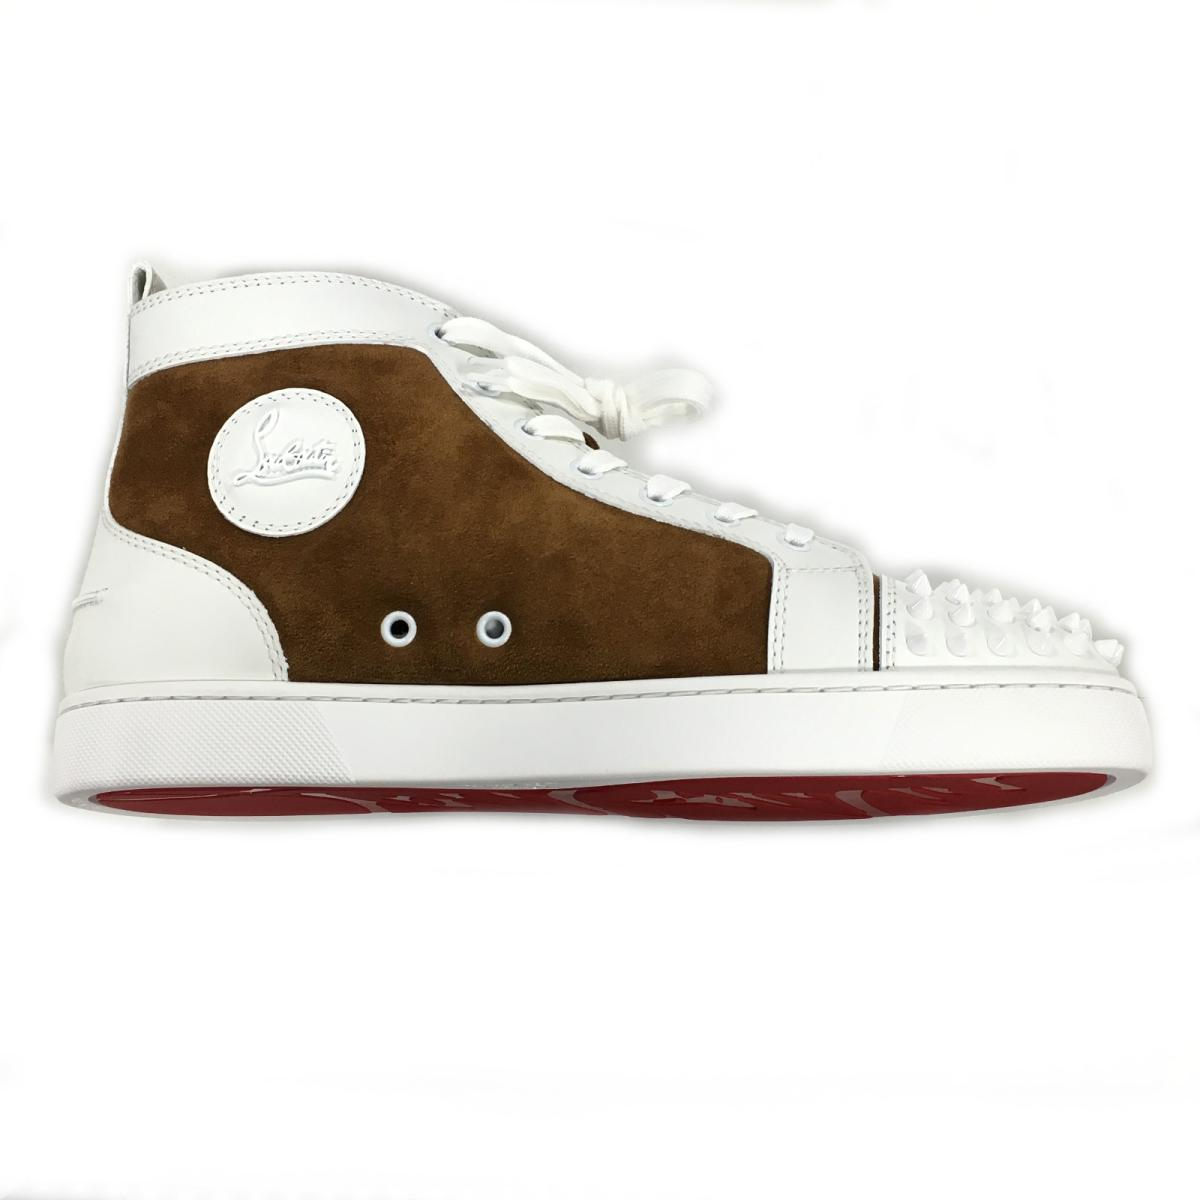 Christian ルブタンハイカットスニーカー Shoes Men And Others Leather X Suede X Rubber Brown X White 3170050 Christian Louboutin Brandoff Brand Off Brand Shoes